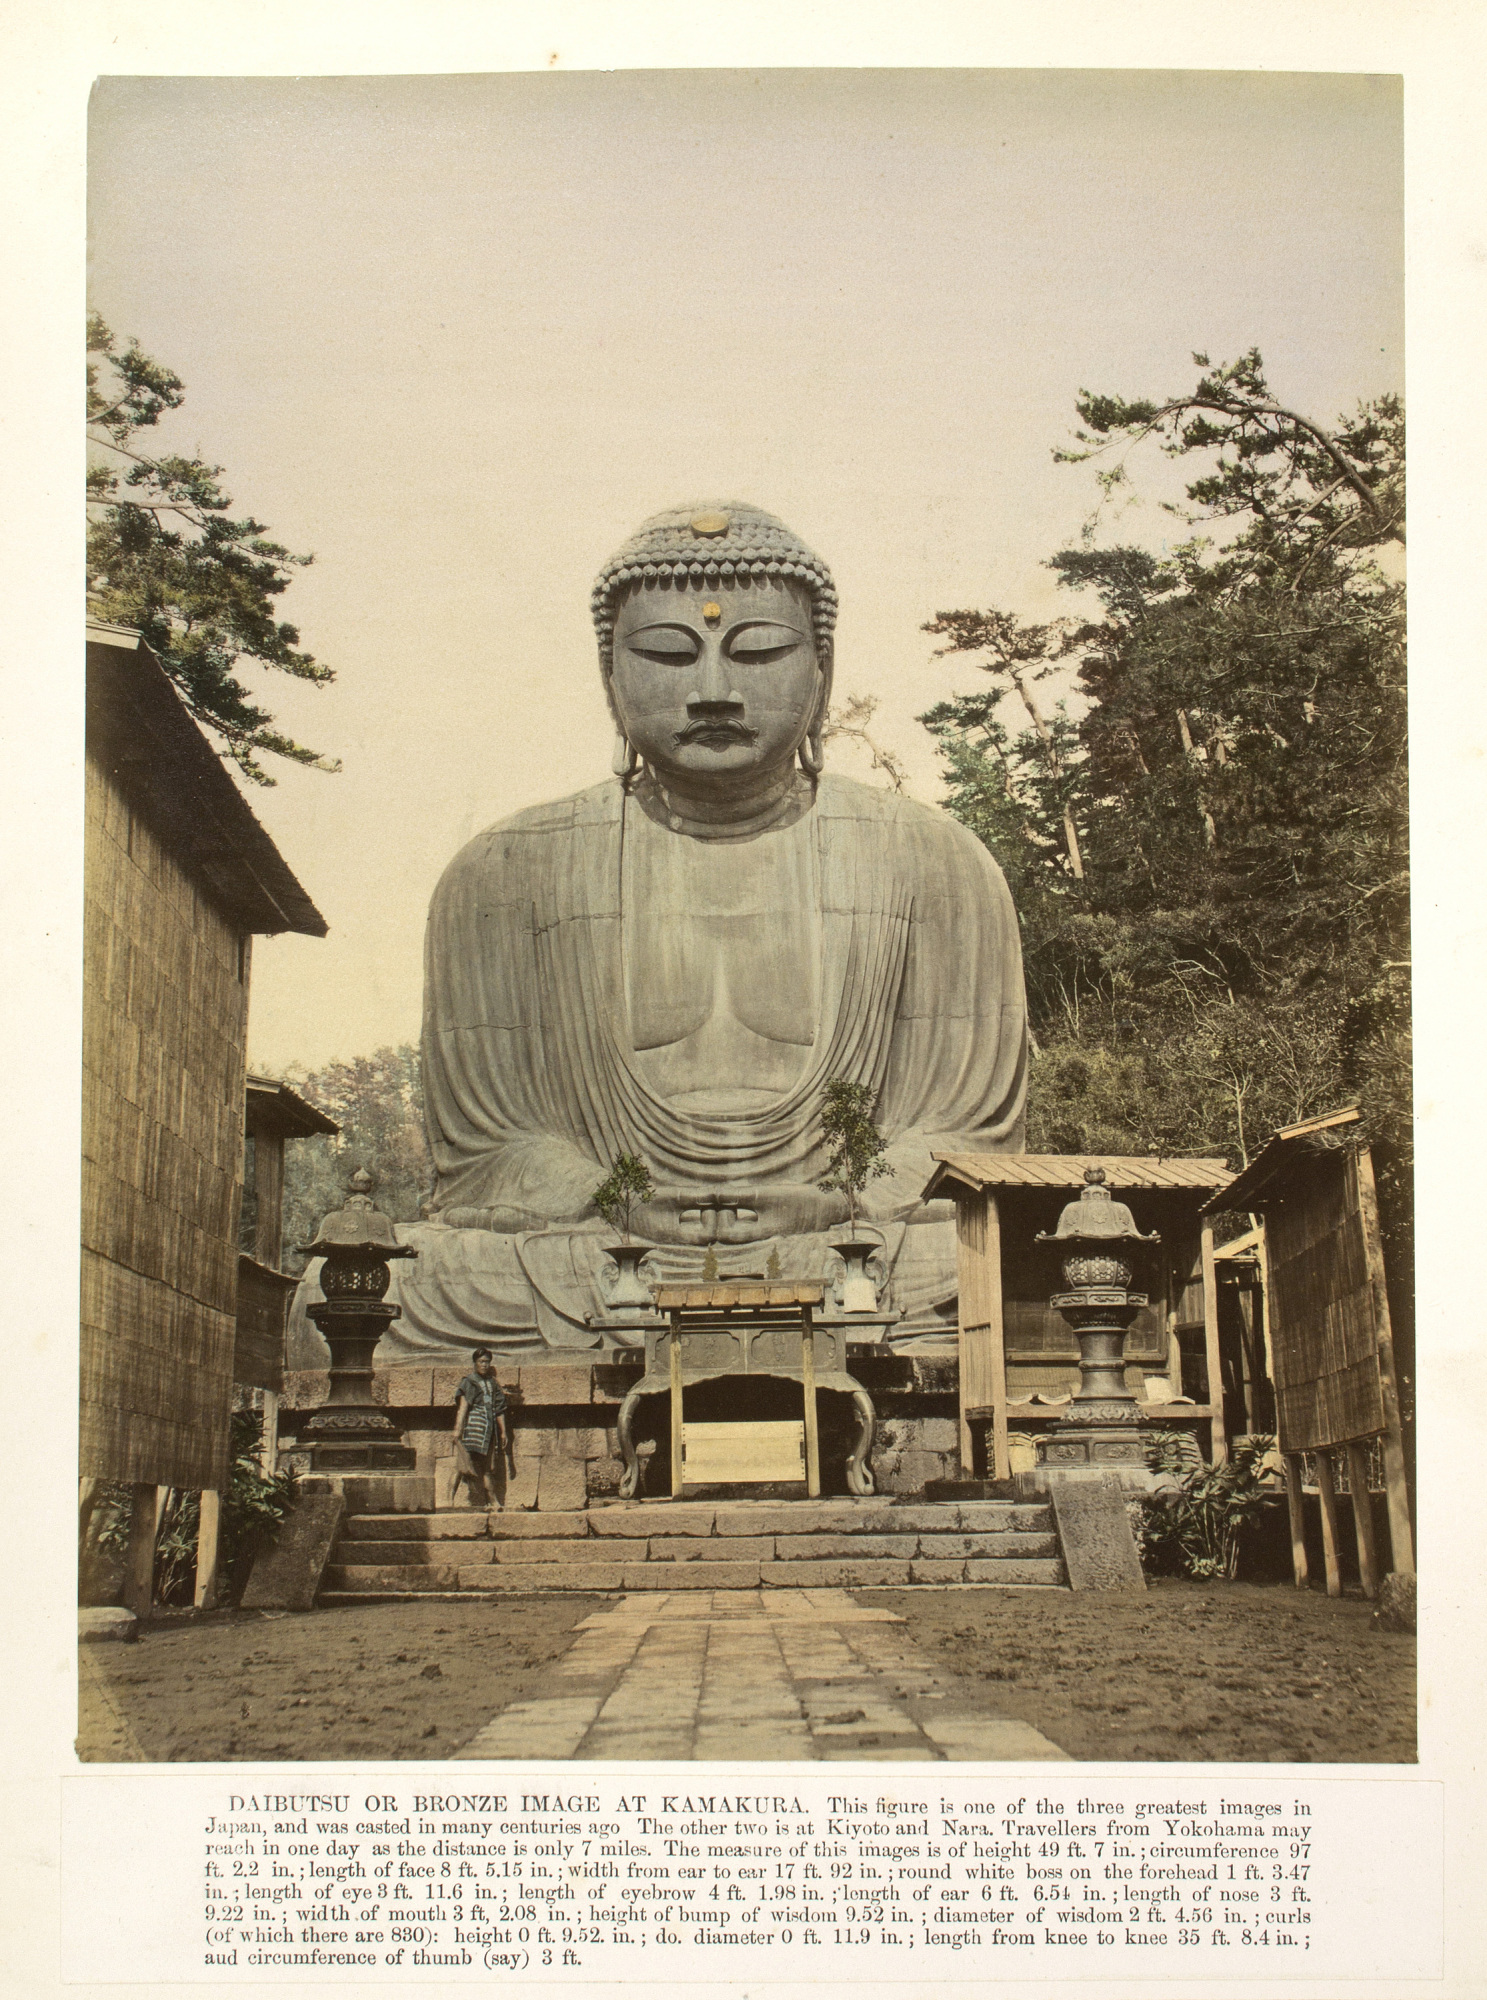 images for Daibutsu or bronze image at Kamakura, 1860 - ca. 1900. graphic